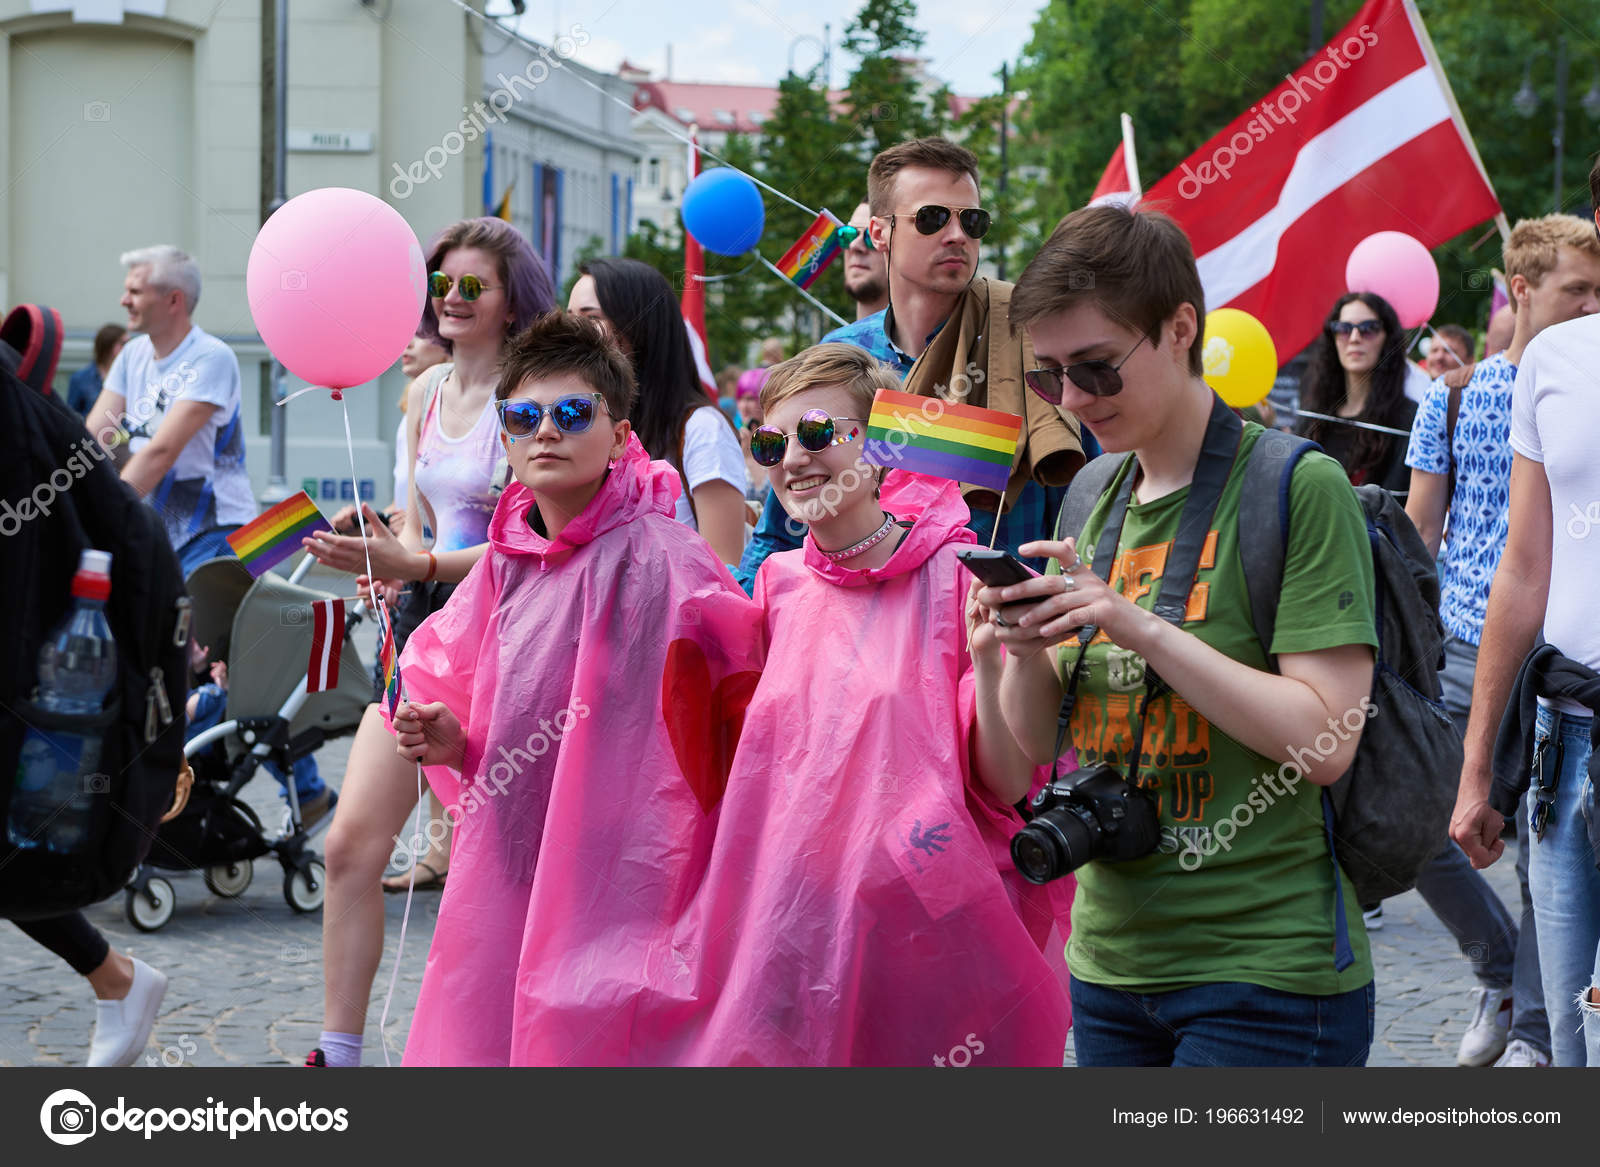 Lesbians gays and bisexual marches